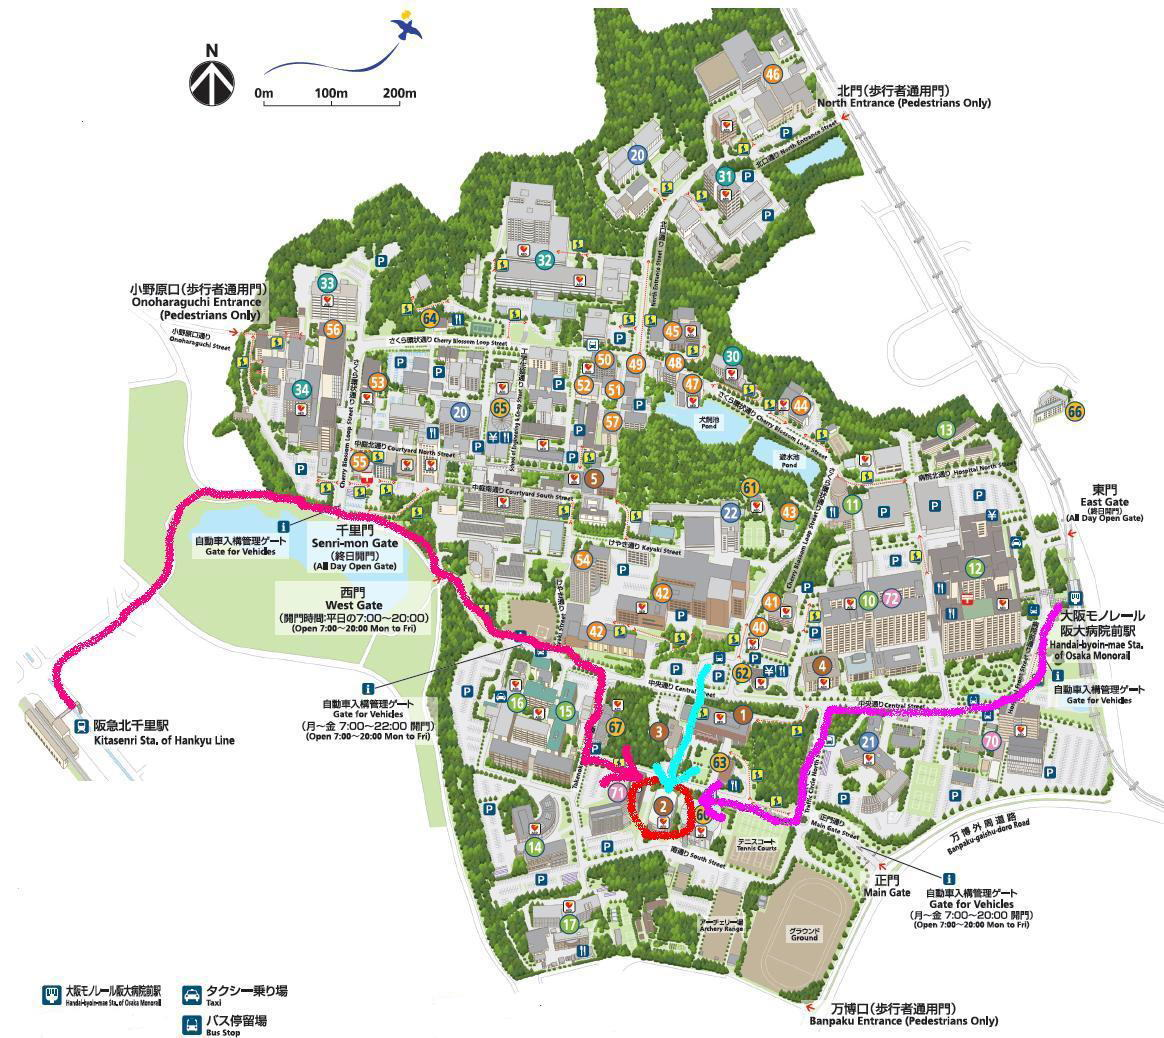 Tsinghua University Campus Map.International Symposium On Advanced Mesostructured Catalysts And